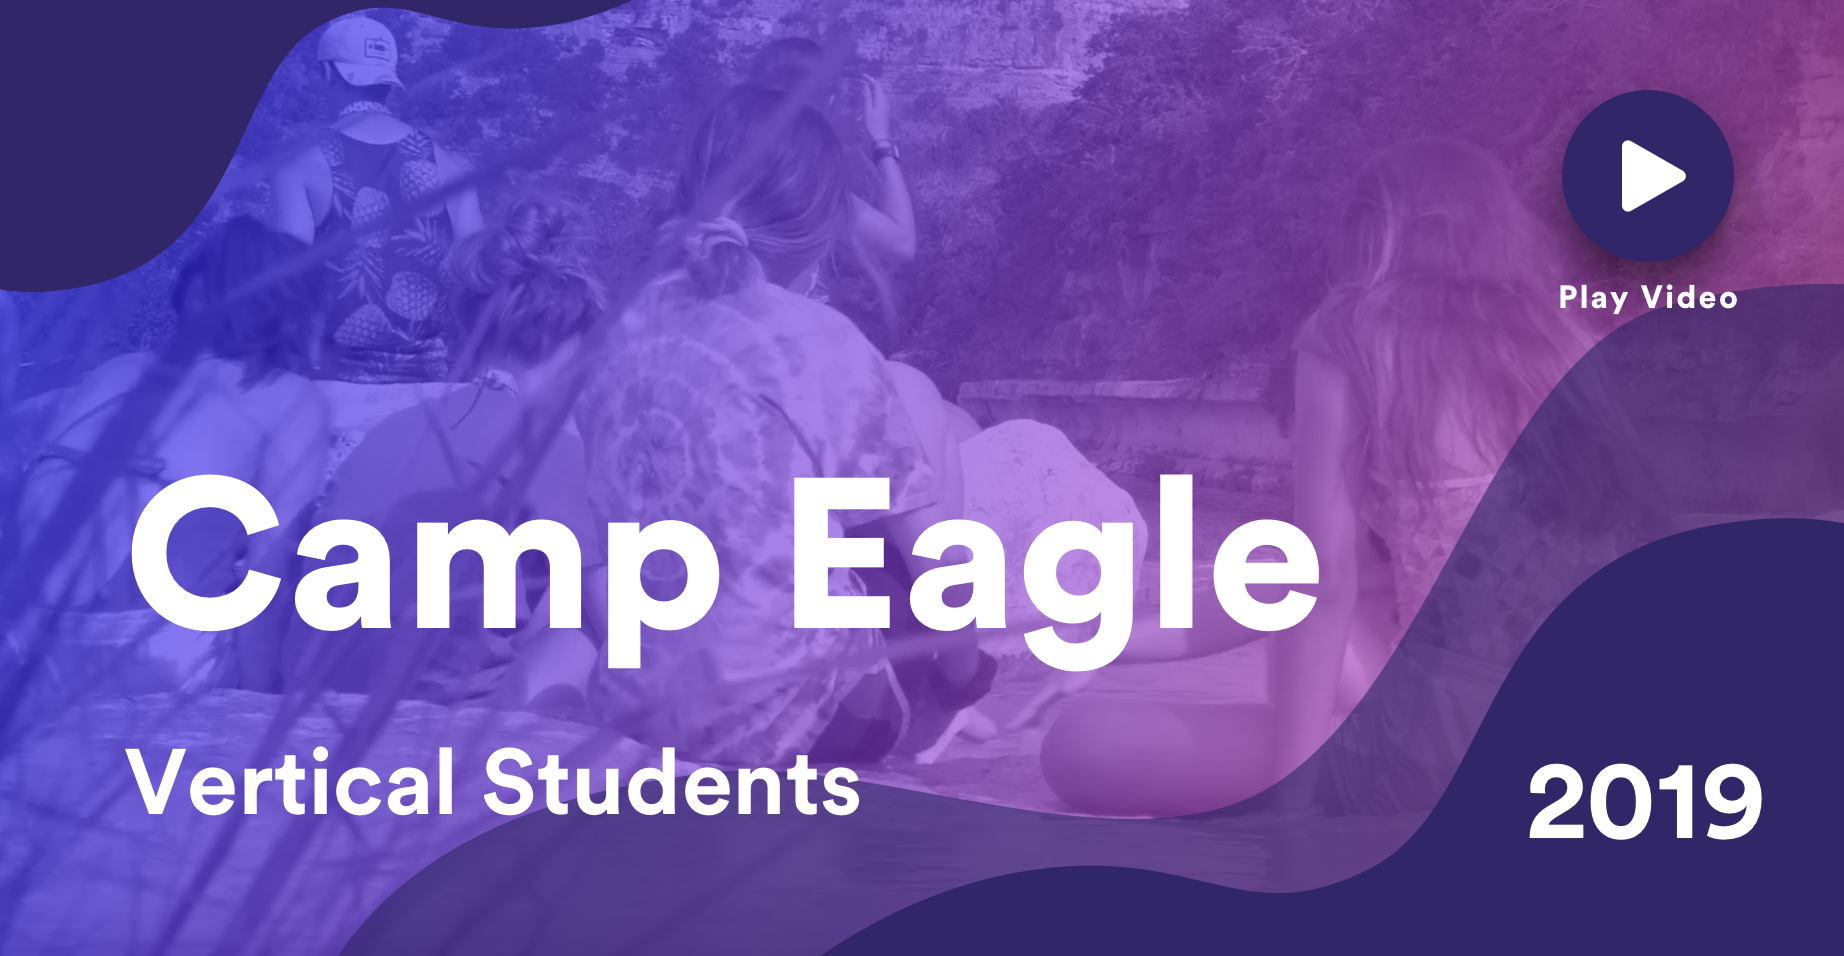 Camp Eagle Video 2019